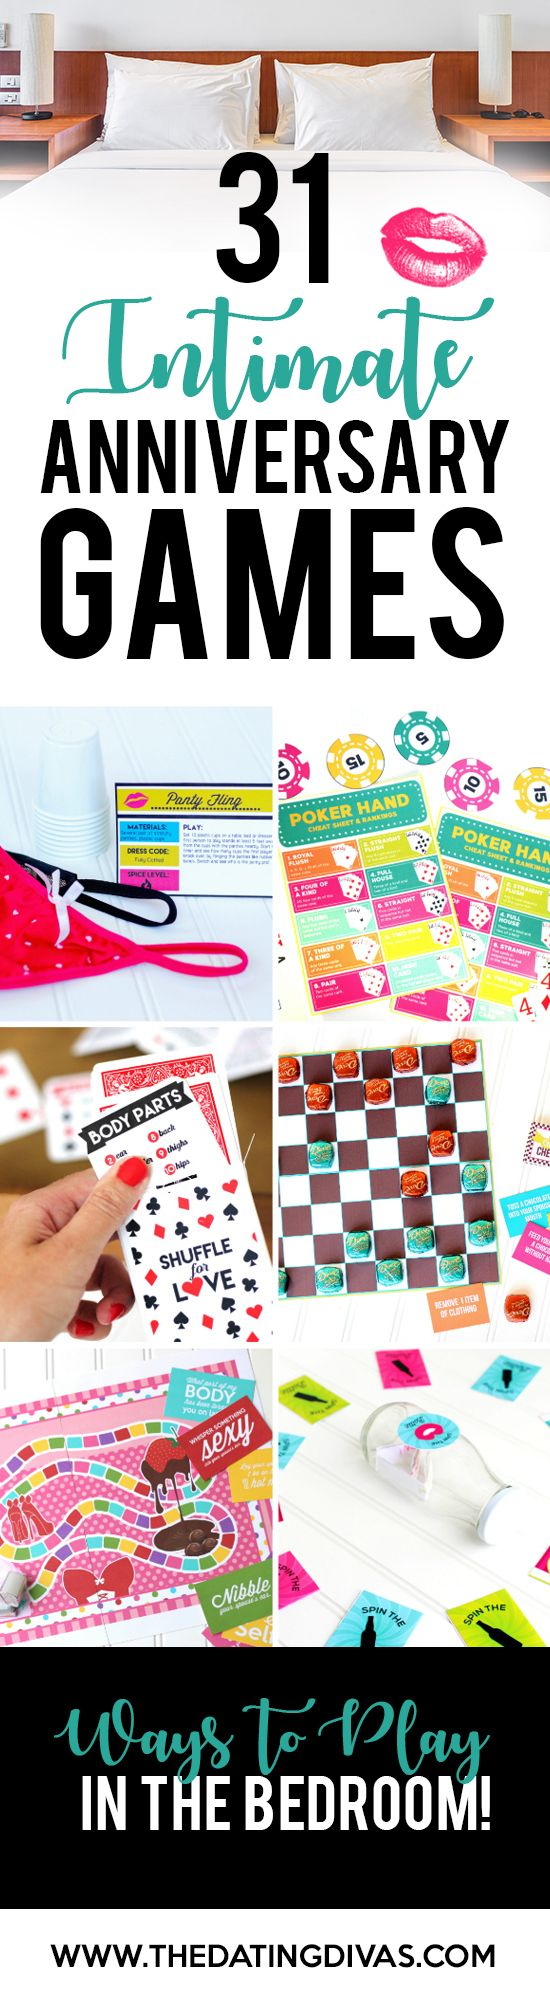 Anniversary Bedroom Games- so many SEXY anniversary ideas. Now THIS is what my man would appreciate. ha ha ha.